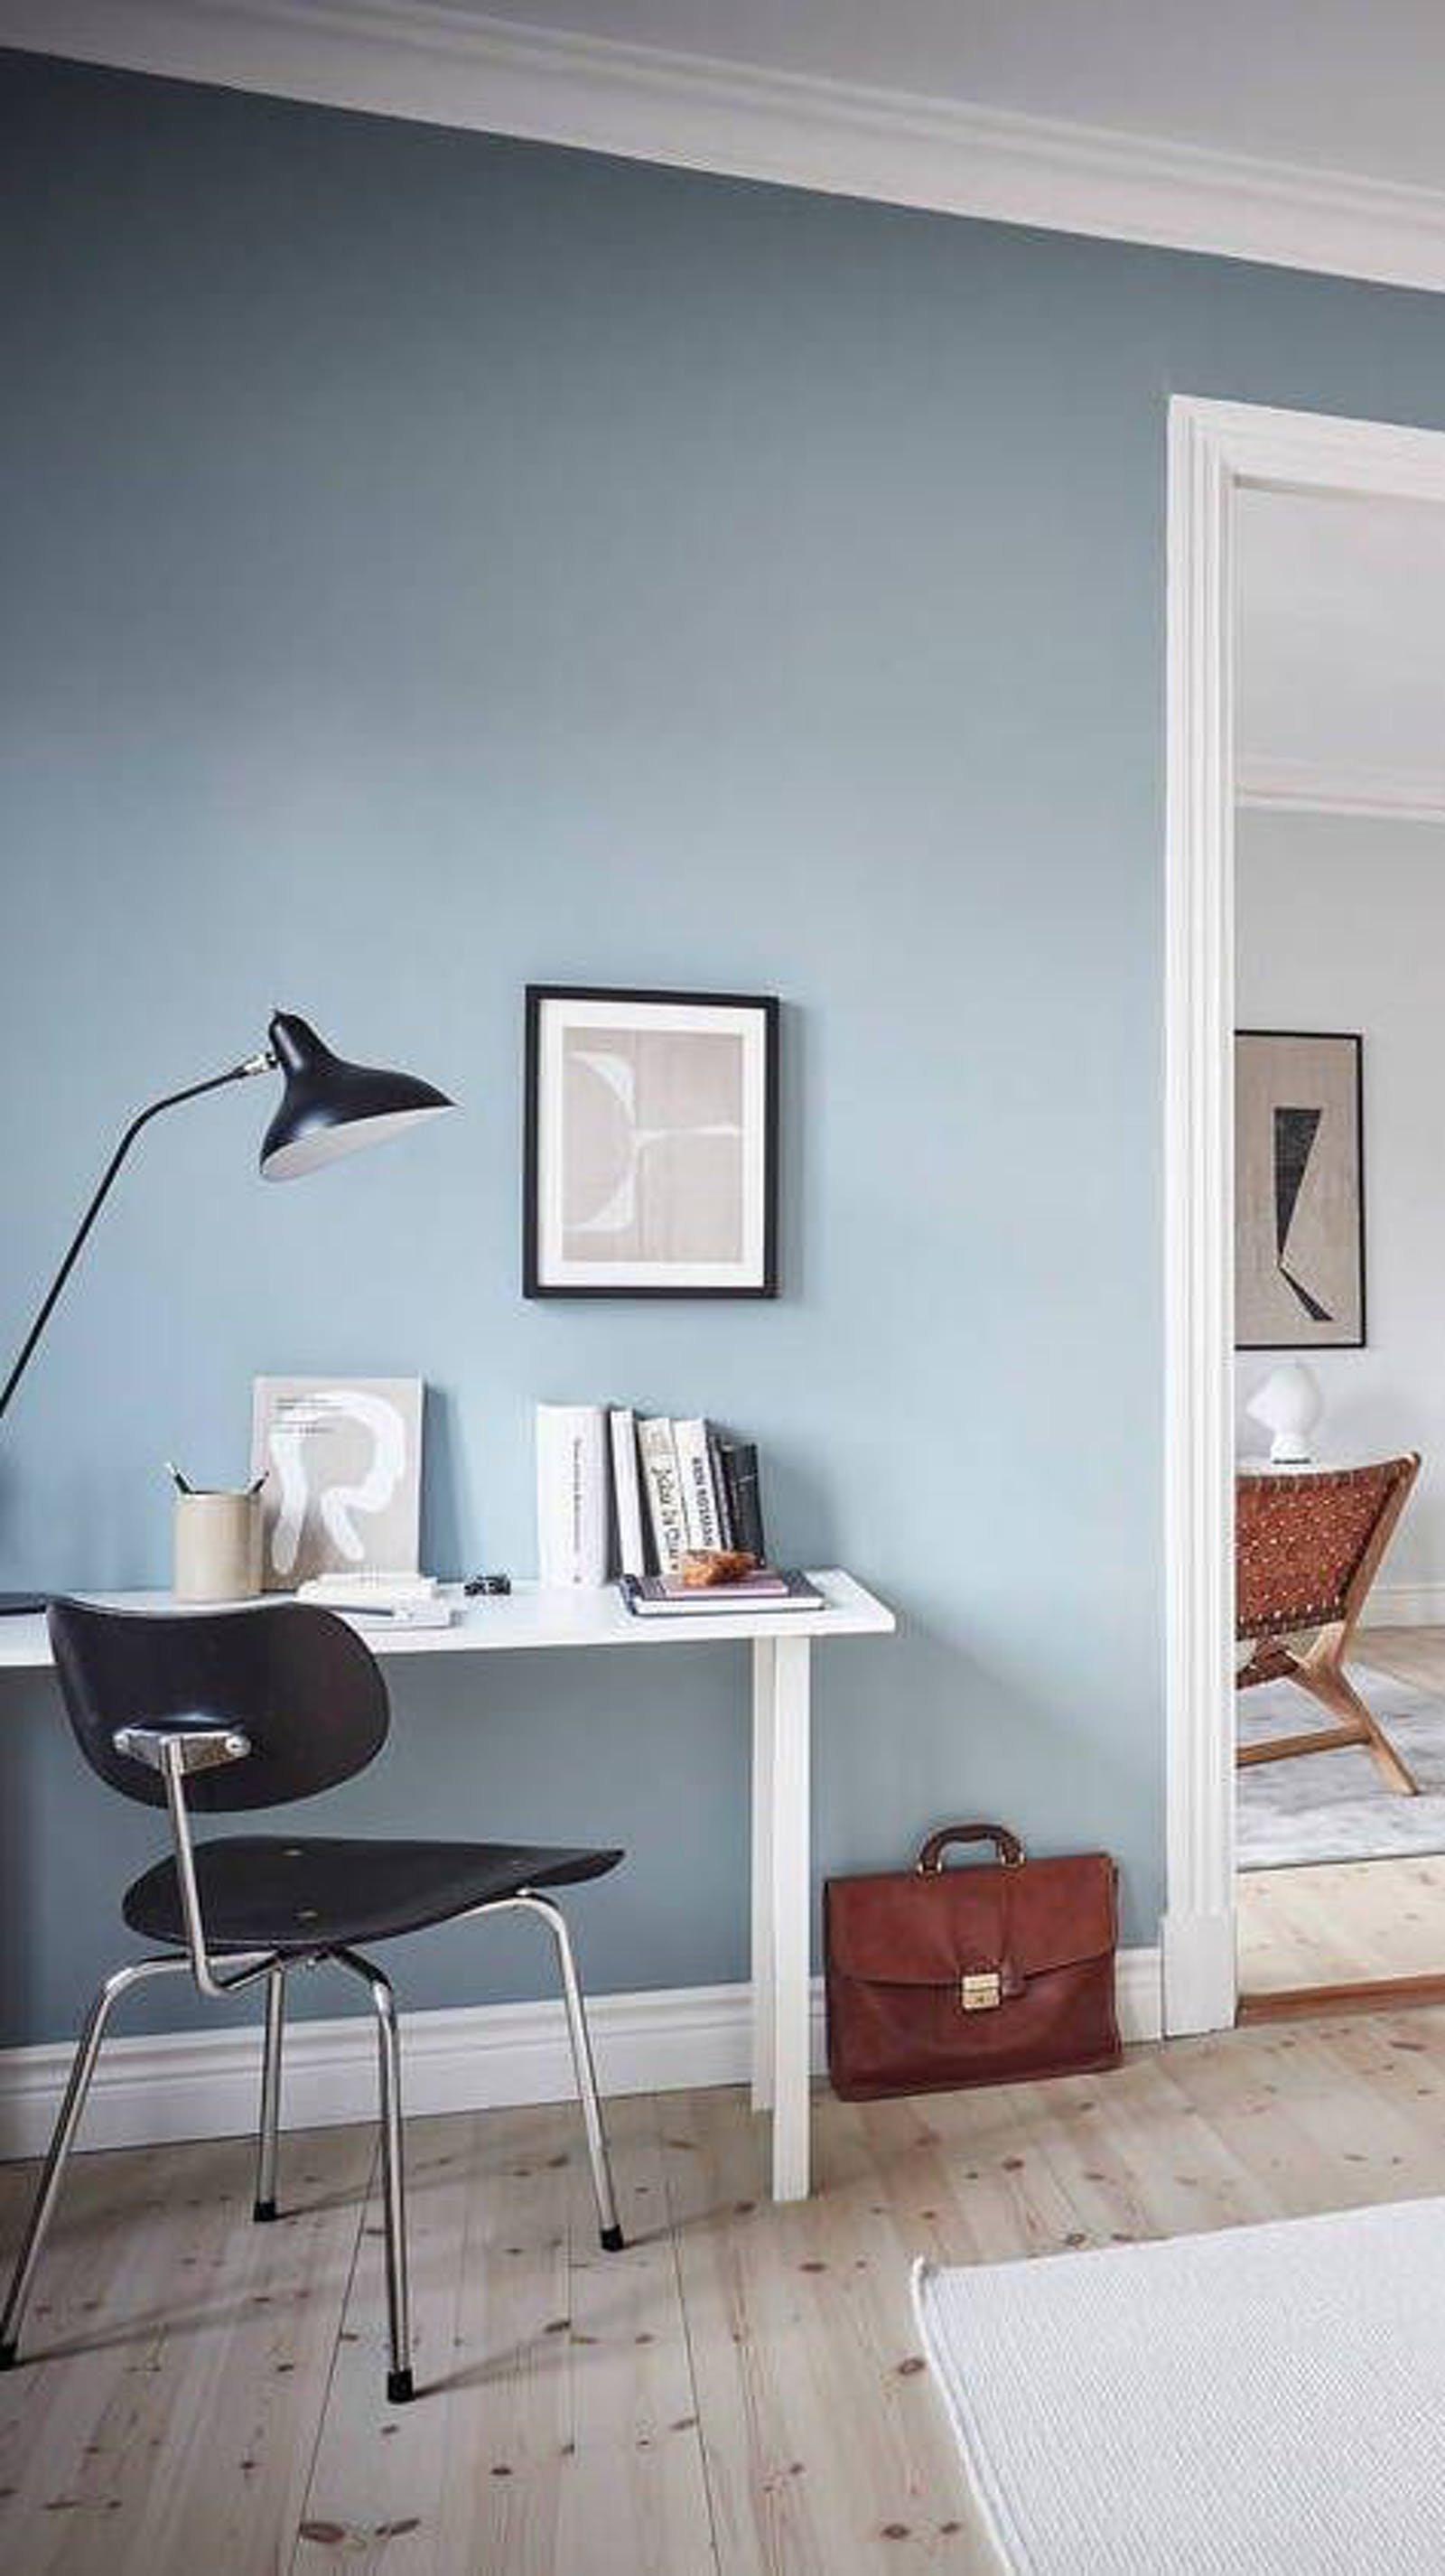 Home office area with minimalistic design and a wall painted in bright blue